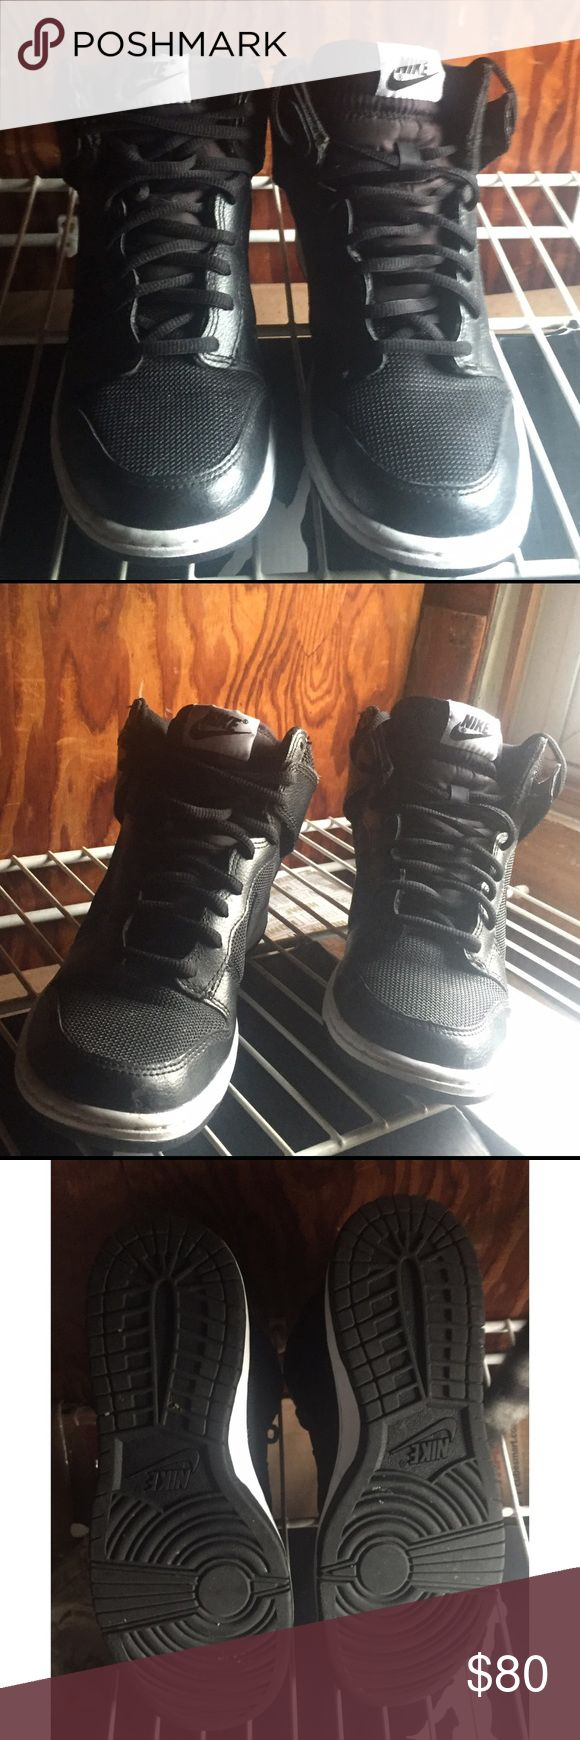 ⚡️Reduced Price⚡️High top Nikes High top Nike sneakers. Size 7.5 women's. Used once for an hour, refer to second pic for bottom of sneakers. No drag marks. They have been cleaned. Pictures 1,3&4 are new pics. Runs small, Not intended for people who have wide feet. Pair with sweat pants, cargo pants or joggers and comfortable sweater with a leather or bomber jacket to have a street wear hip hop type of look. Next day shipping. Submit offers through offer button. Reduced already, No…